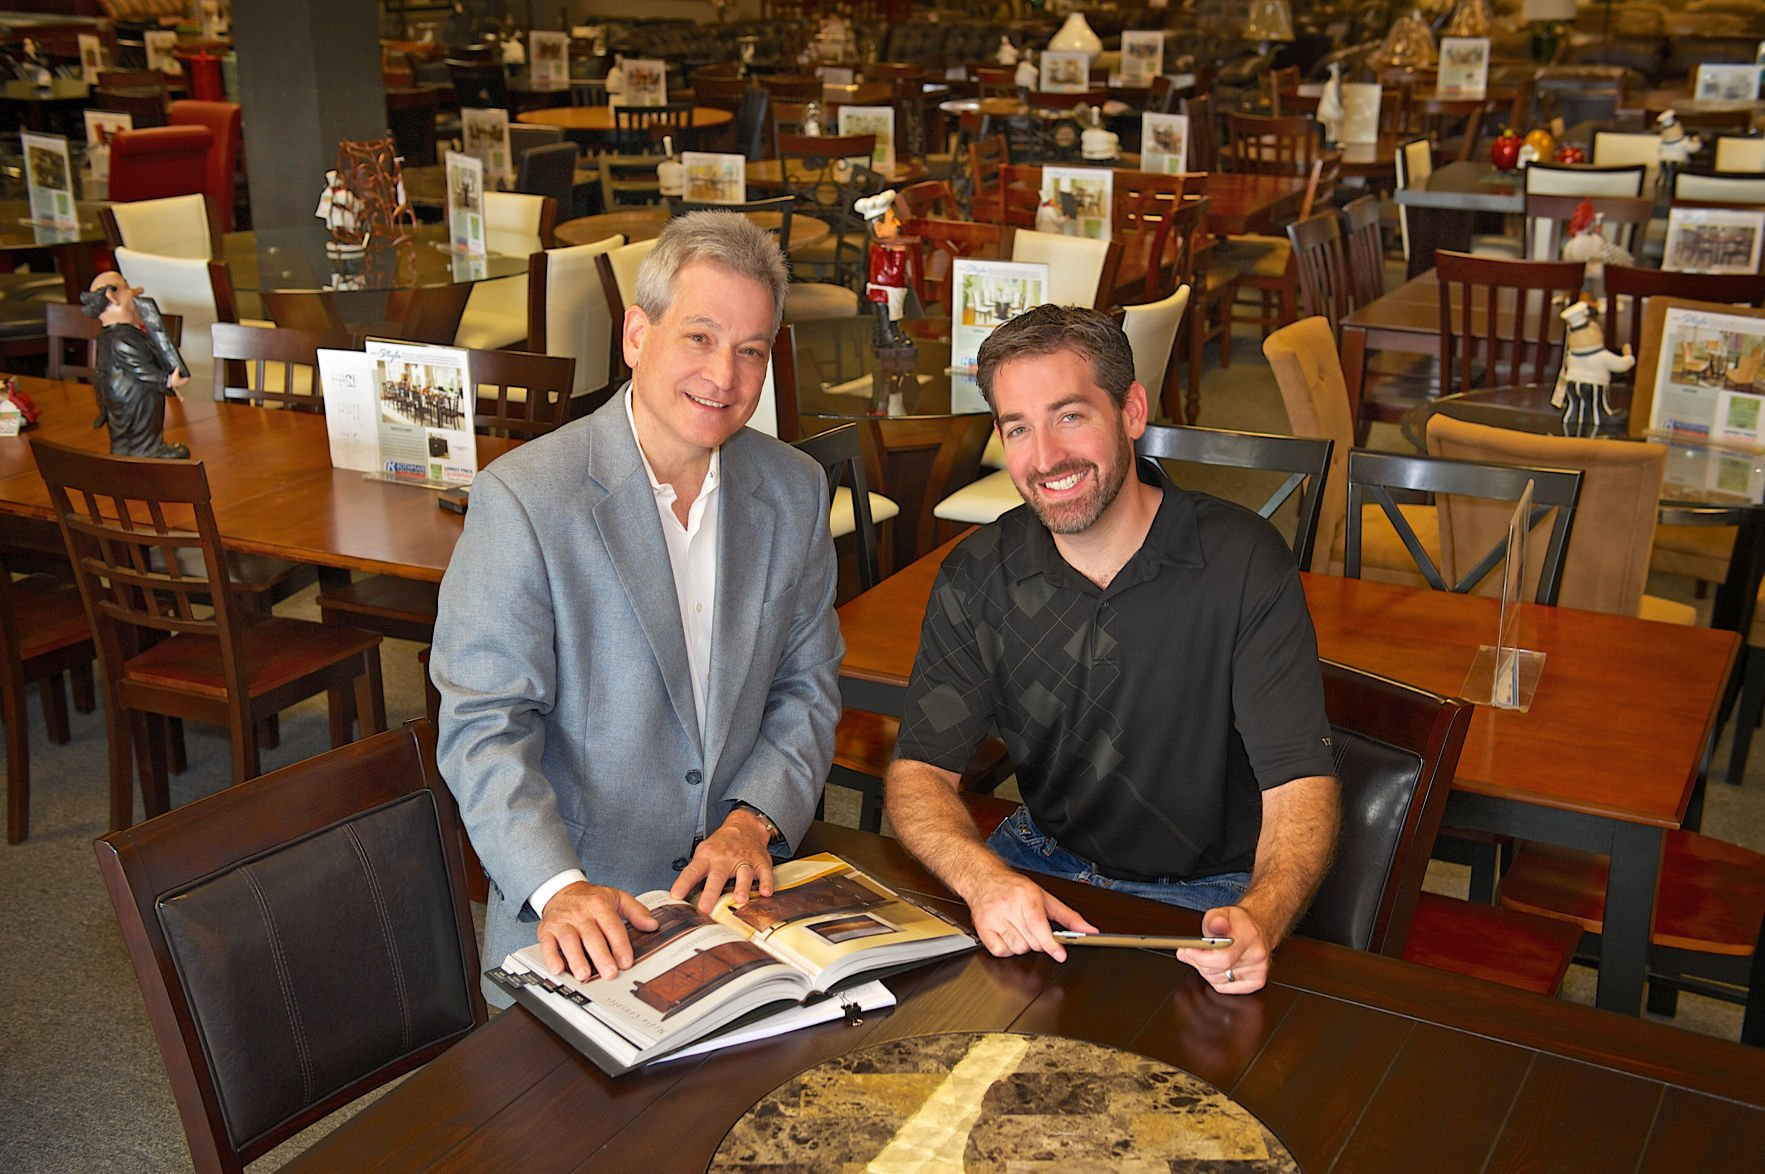 Rothman Furniture Closing All Stores After 90 Years | Business |  Stltoday.com